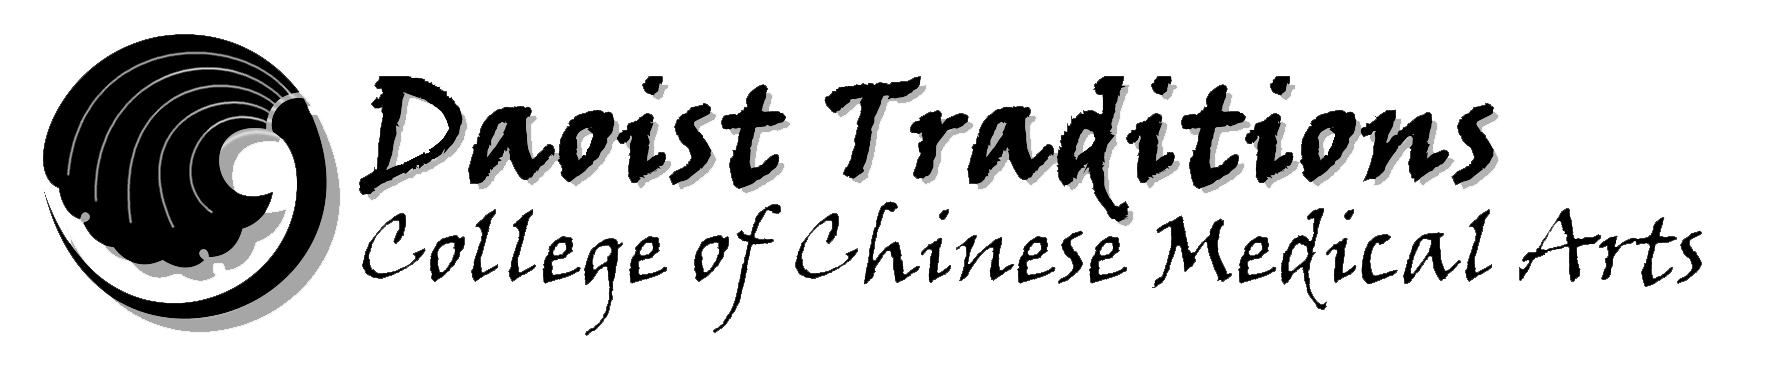 Certificate in Chinese Herbal Medicine - Daoist Traditions College